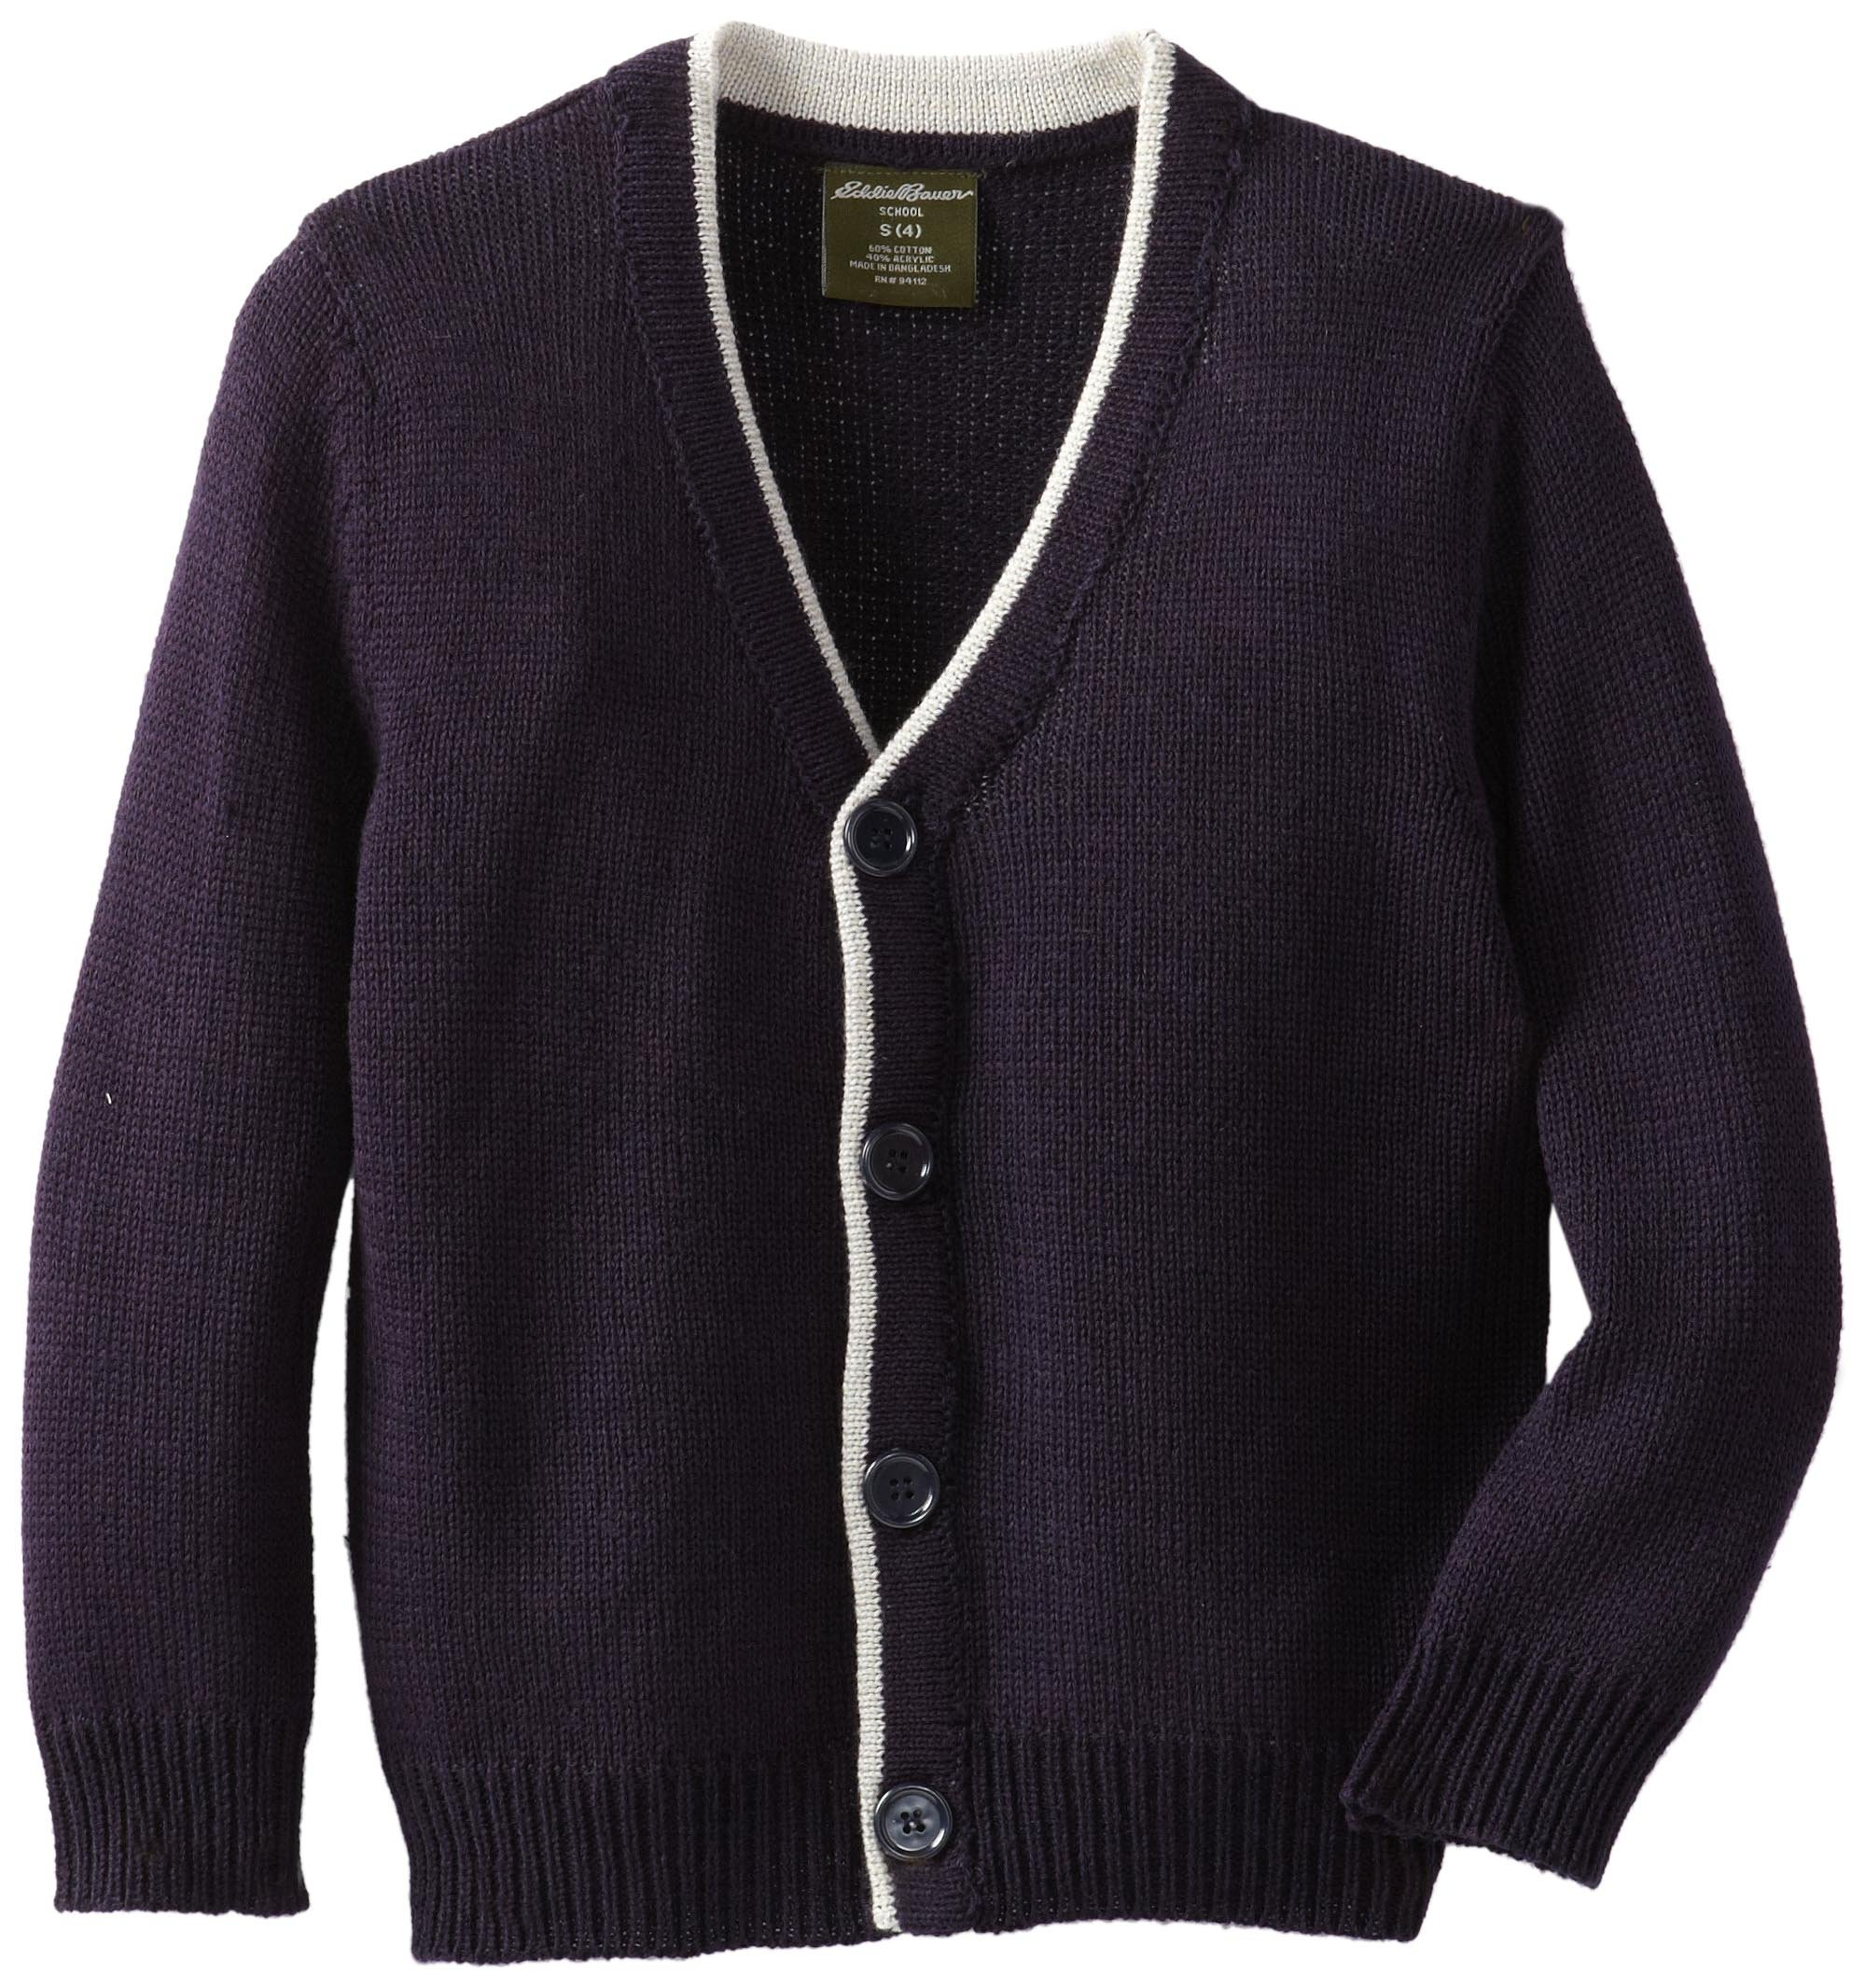 Eddie Bauer Boys' Sweater (More Styles Available), Simple Navy, 7